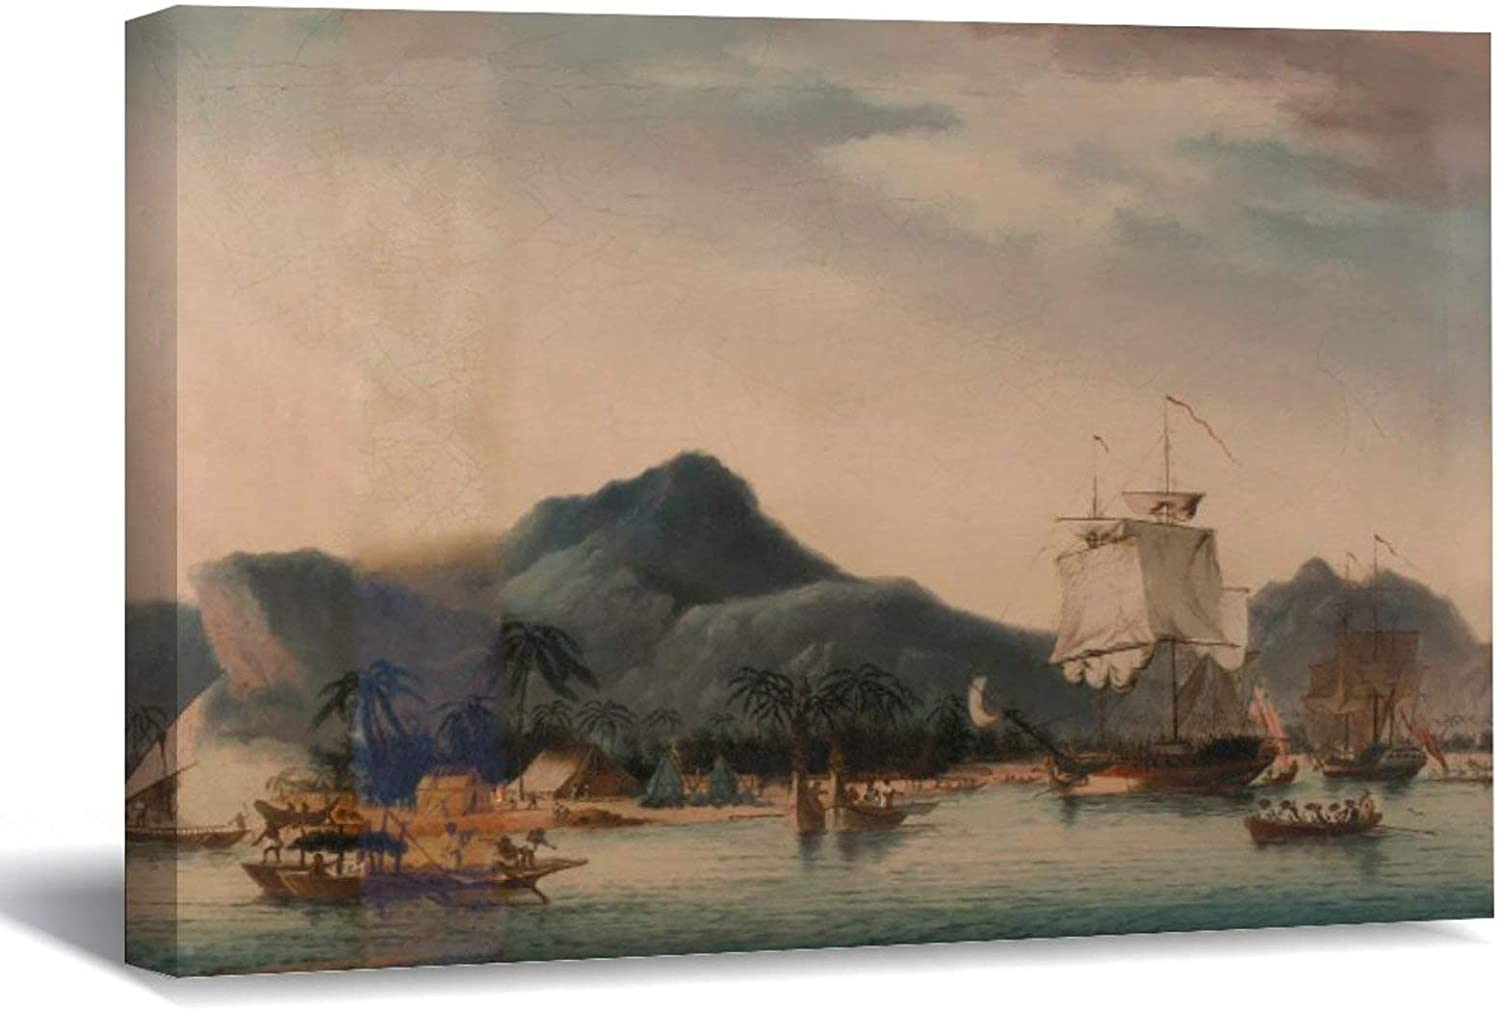 Vintage The Resolution and Discovery Off Hawaii Canvas Picture Painting Artwork Wall Art Poto Framed Canvas Prints for Bedroom Living Room Home Decoration, Ready to Hanging 16